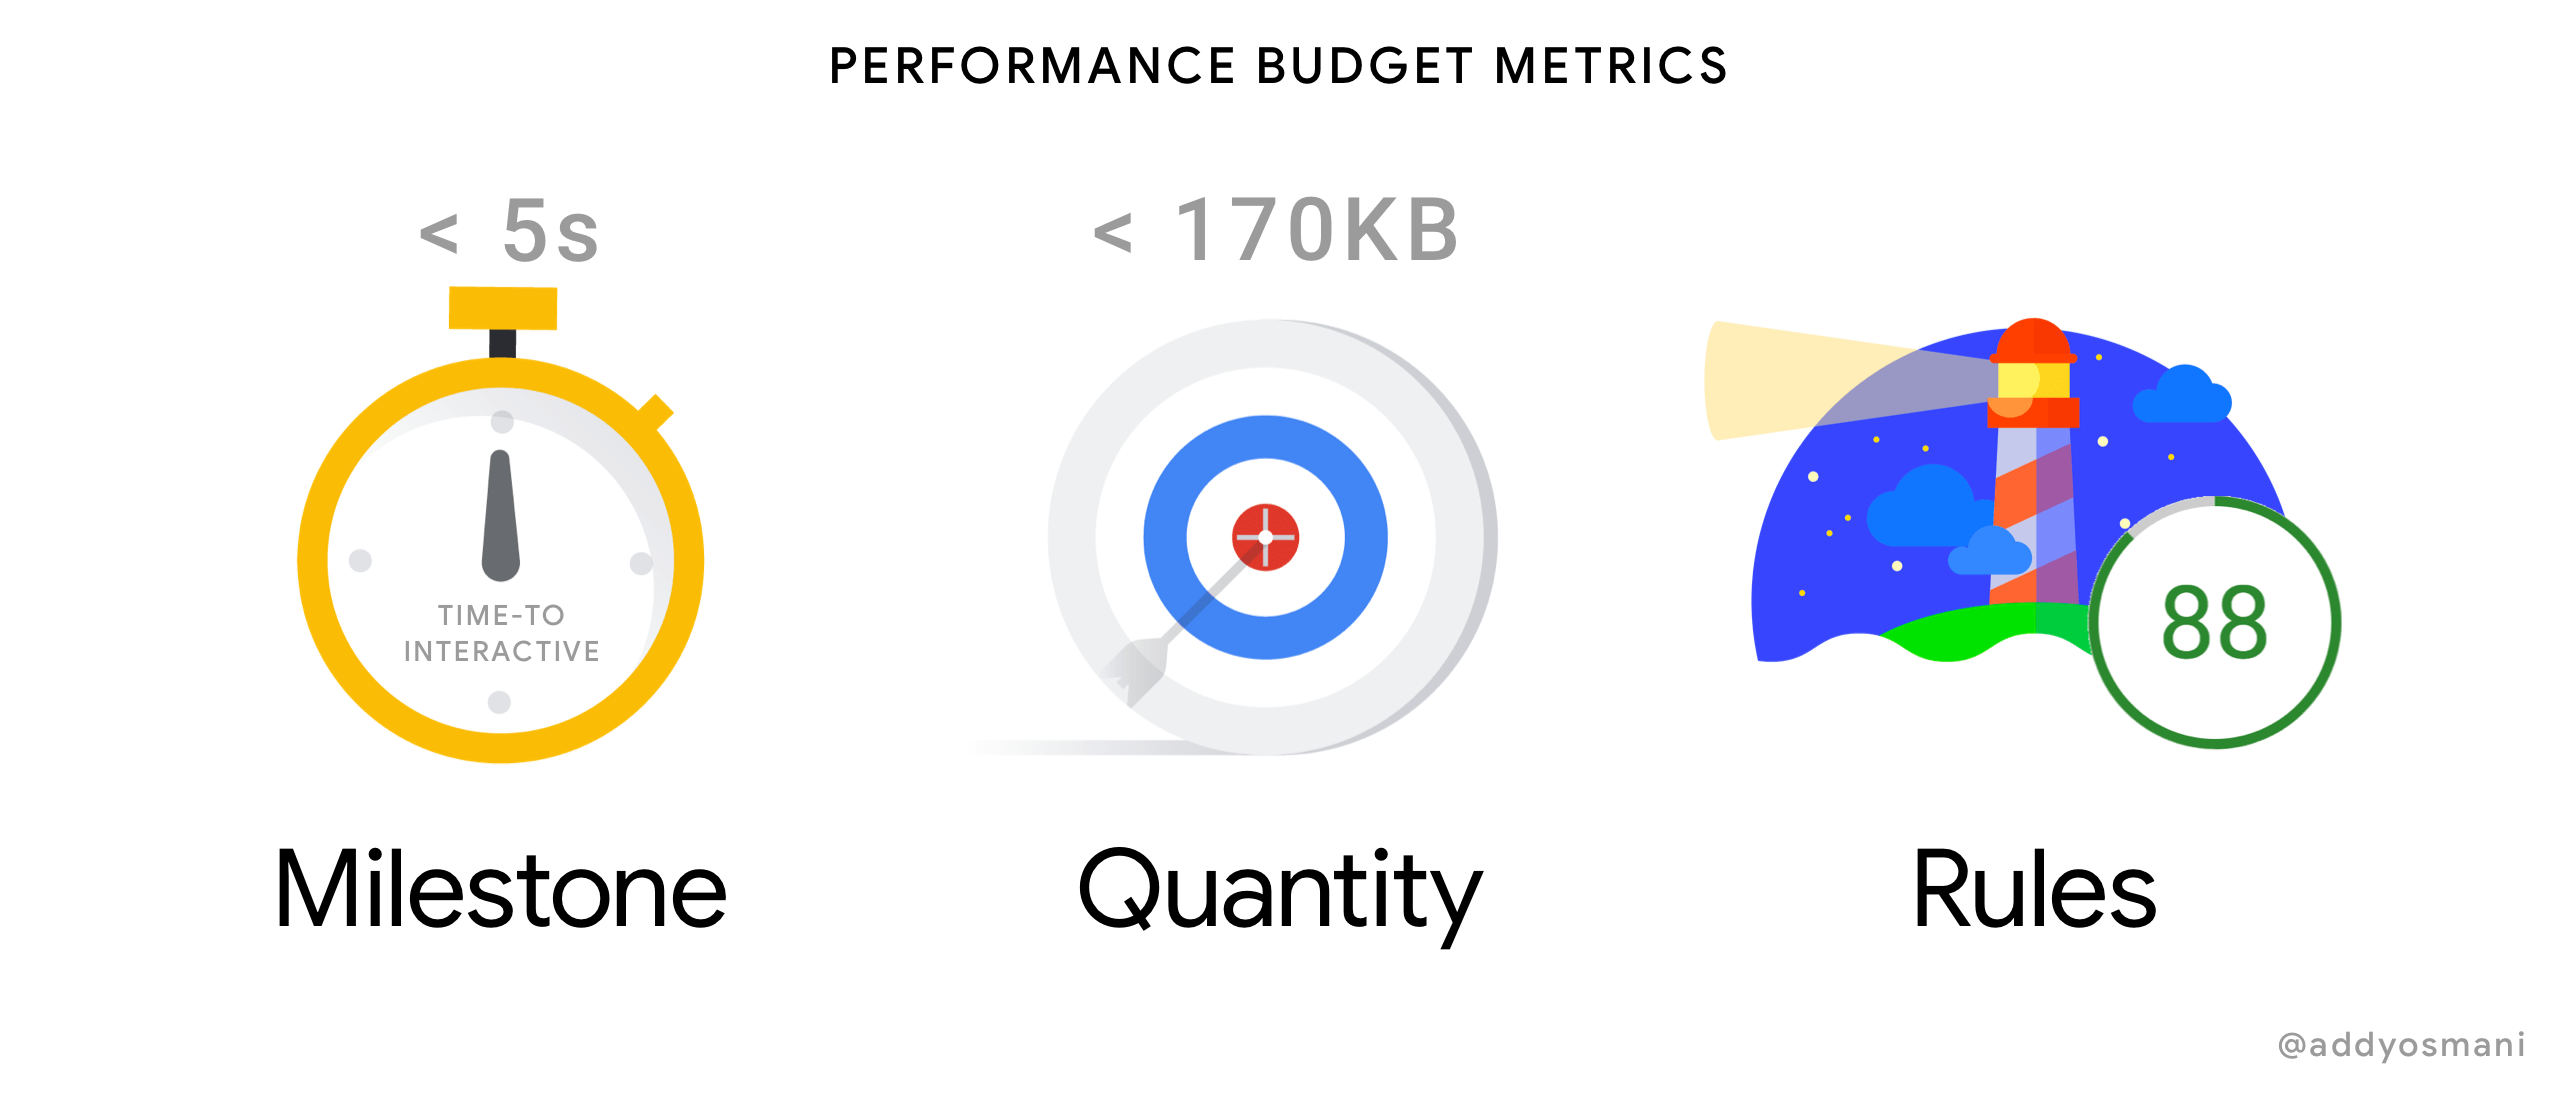 Performance Budget Images